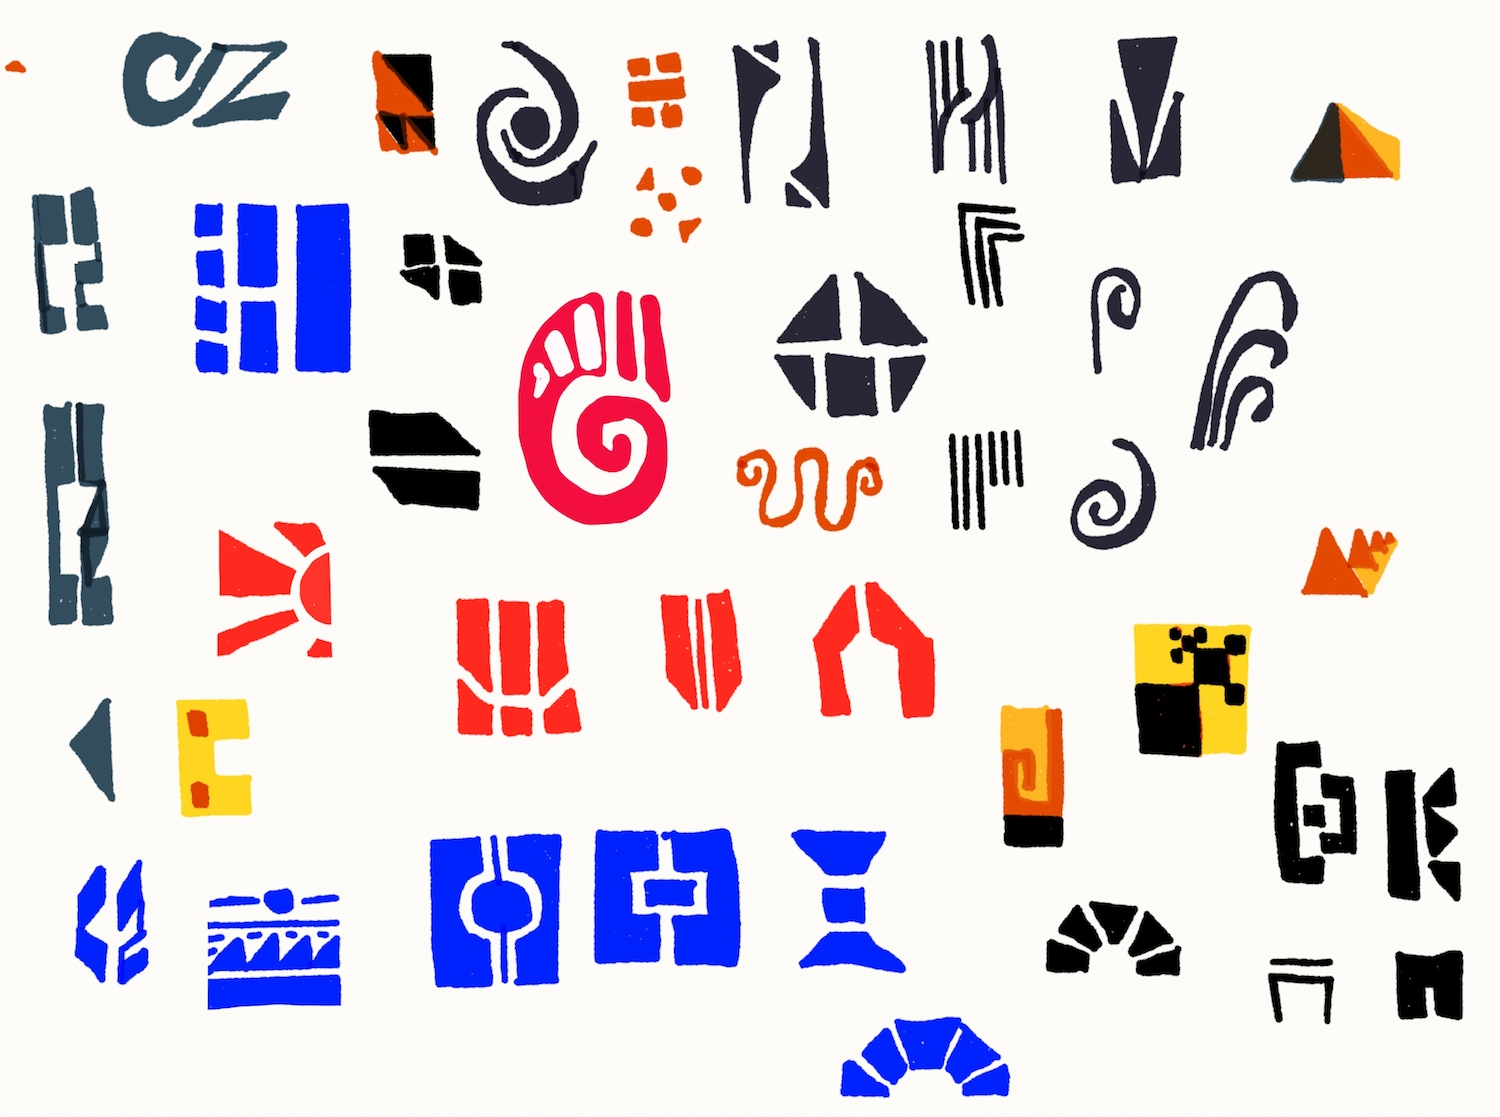 brainstormed-weird-icons-small.png